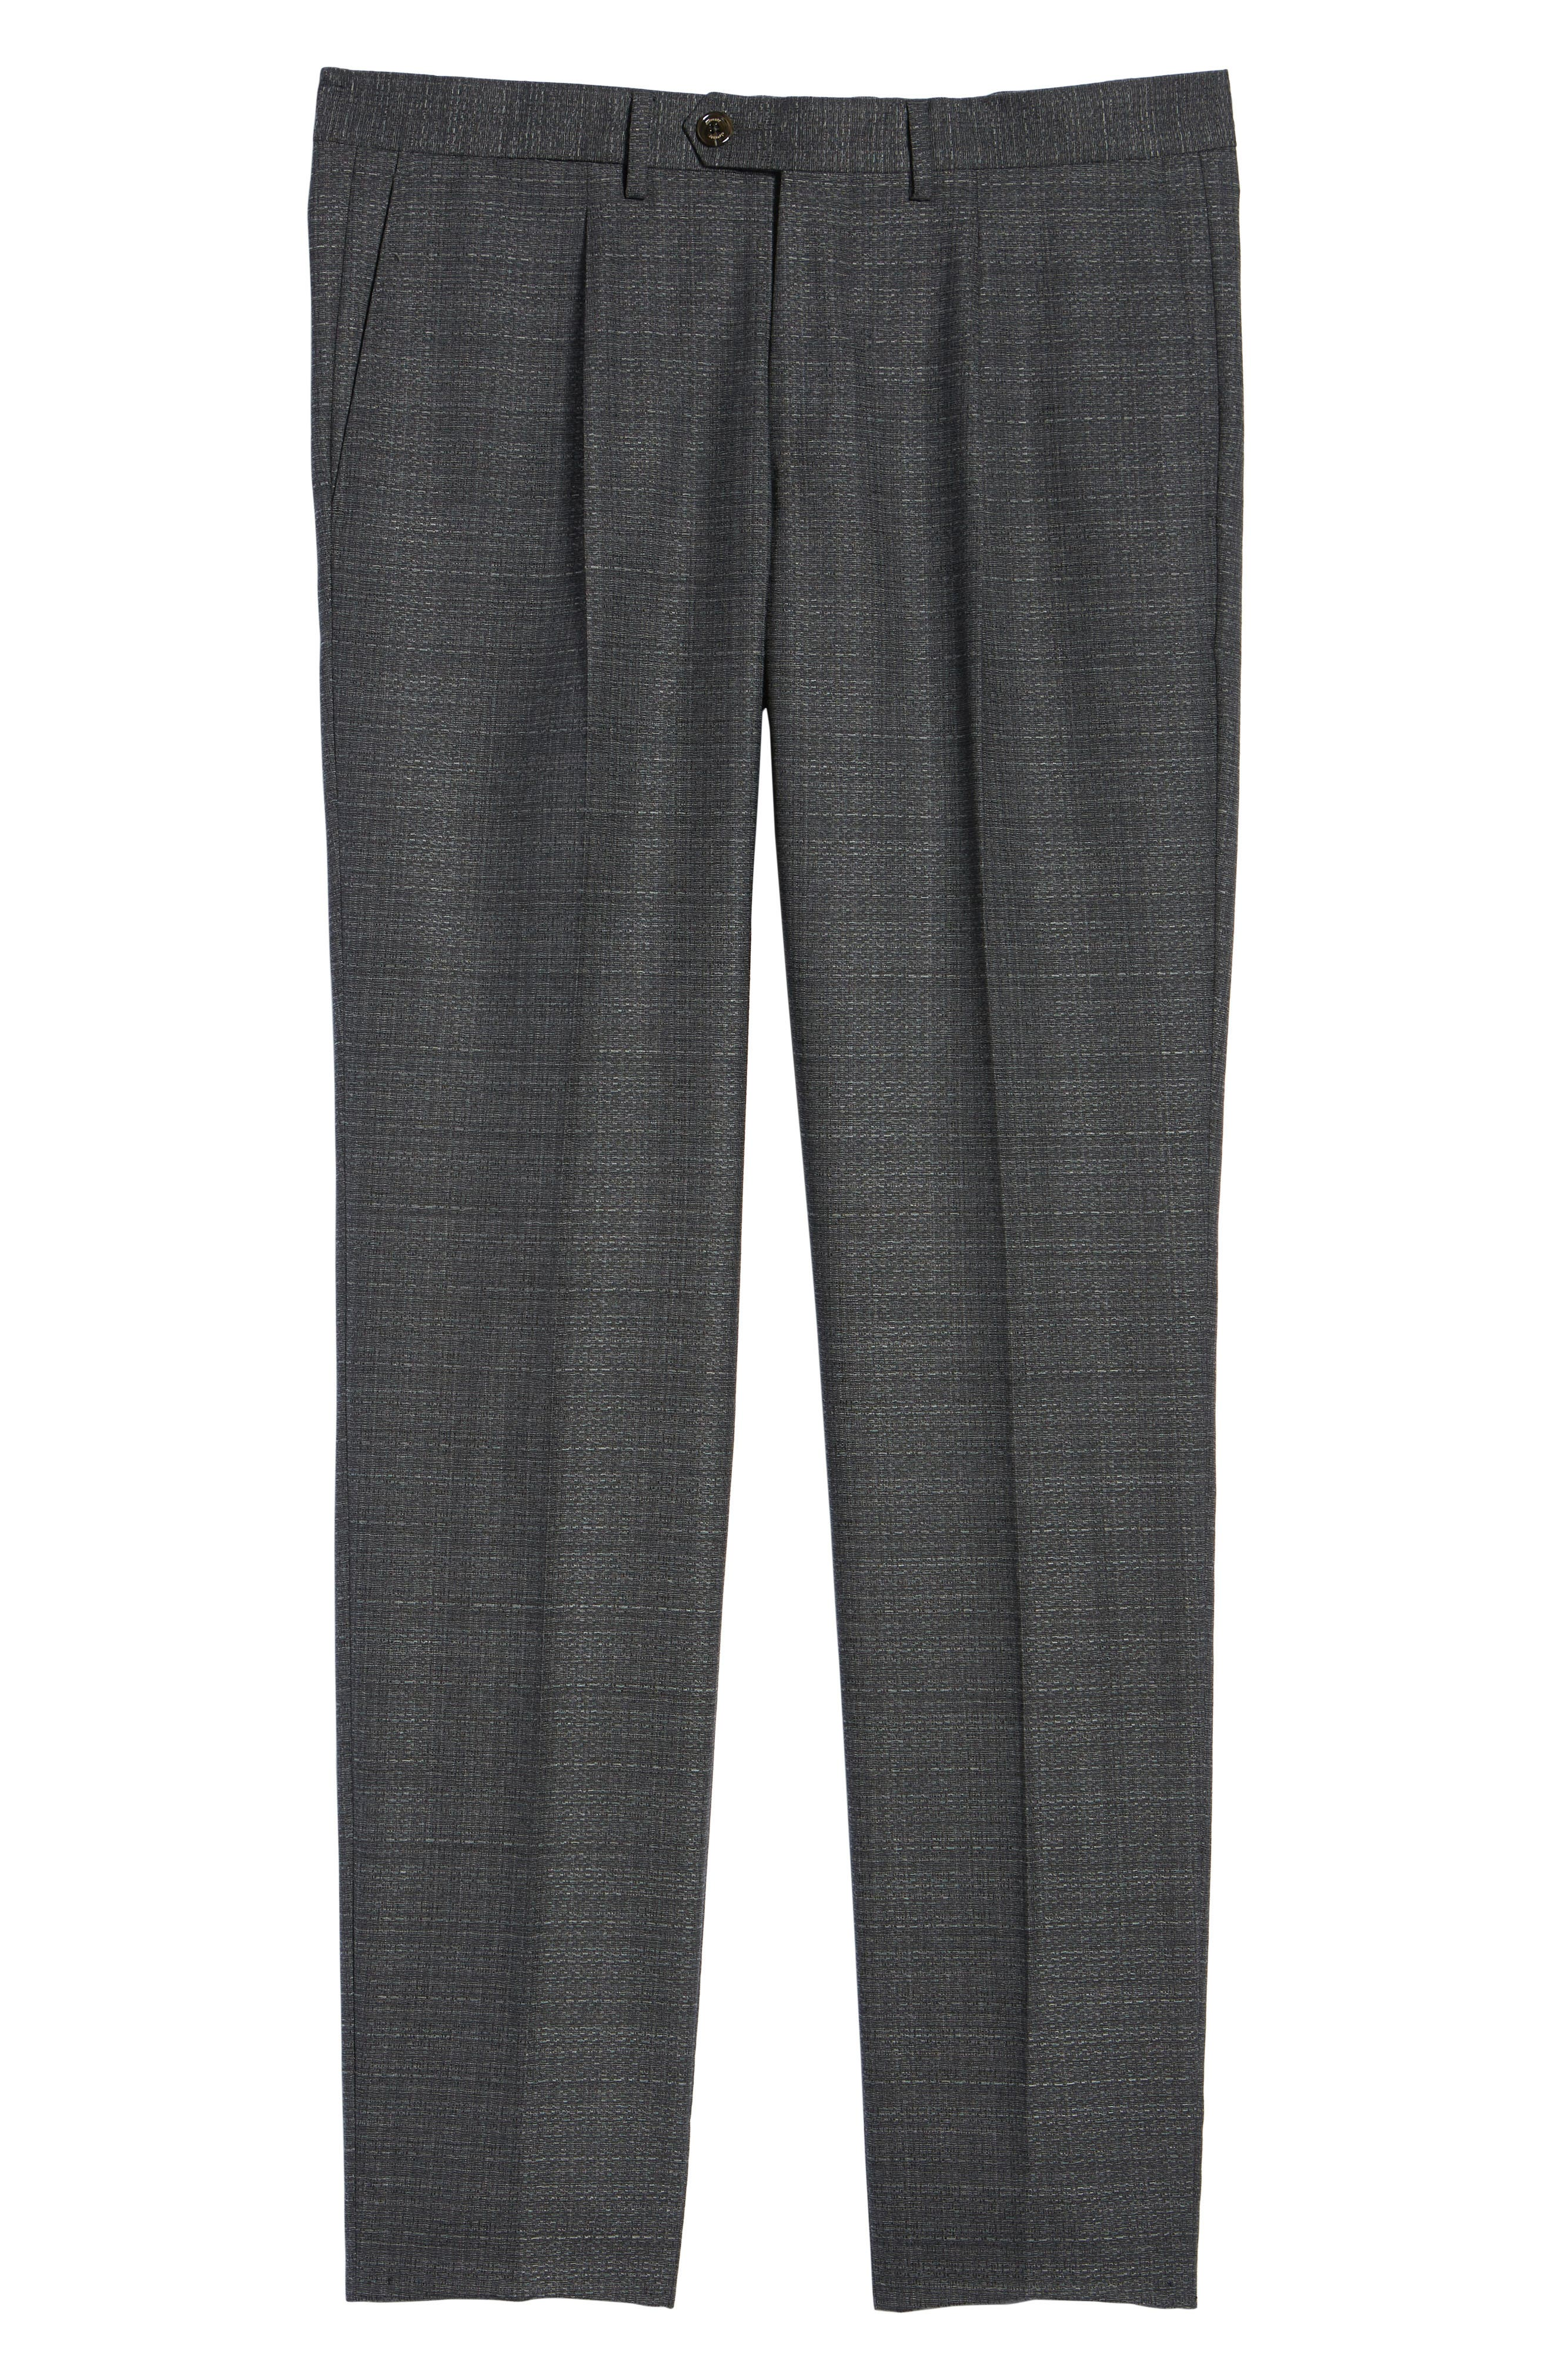 Pleated Solid Wool Trousers,                             Alternate thumbnail 6, color,                             031